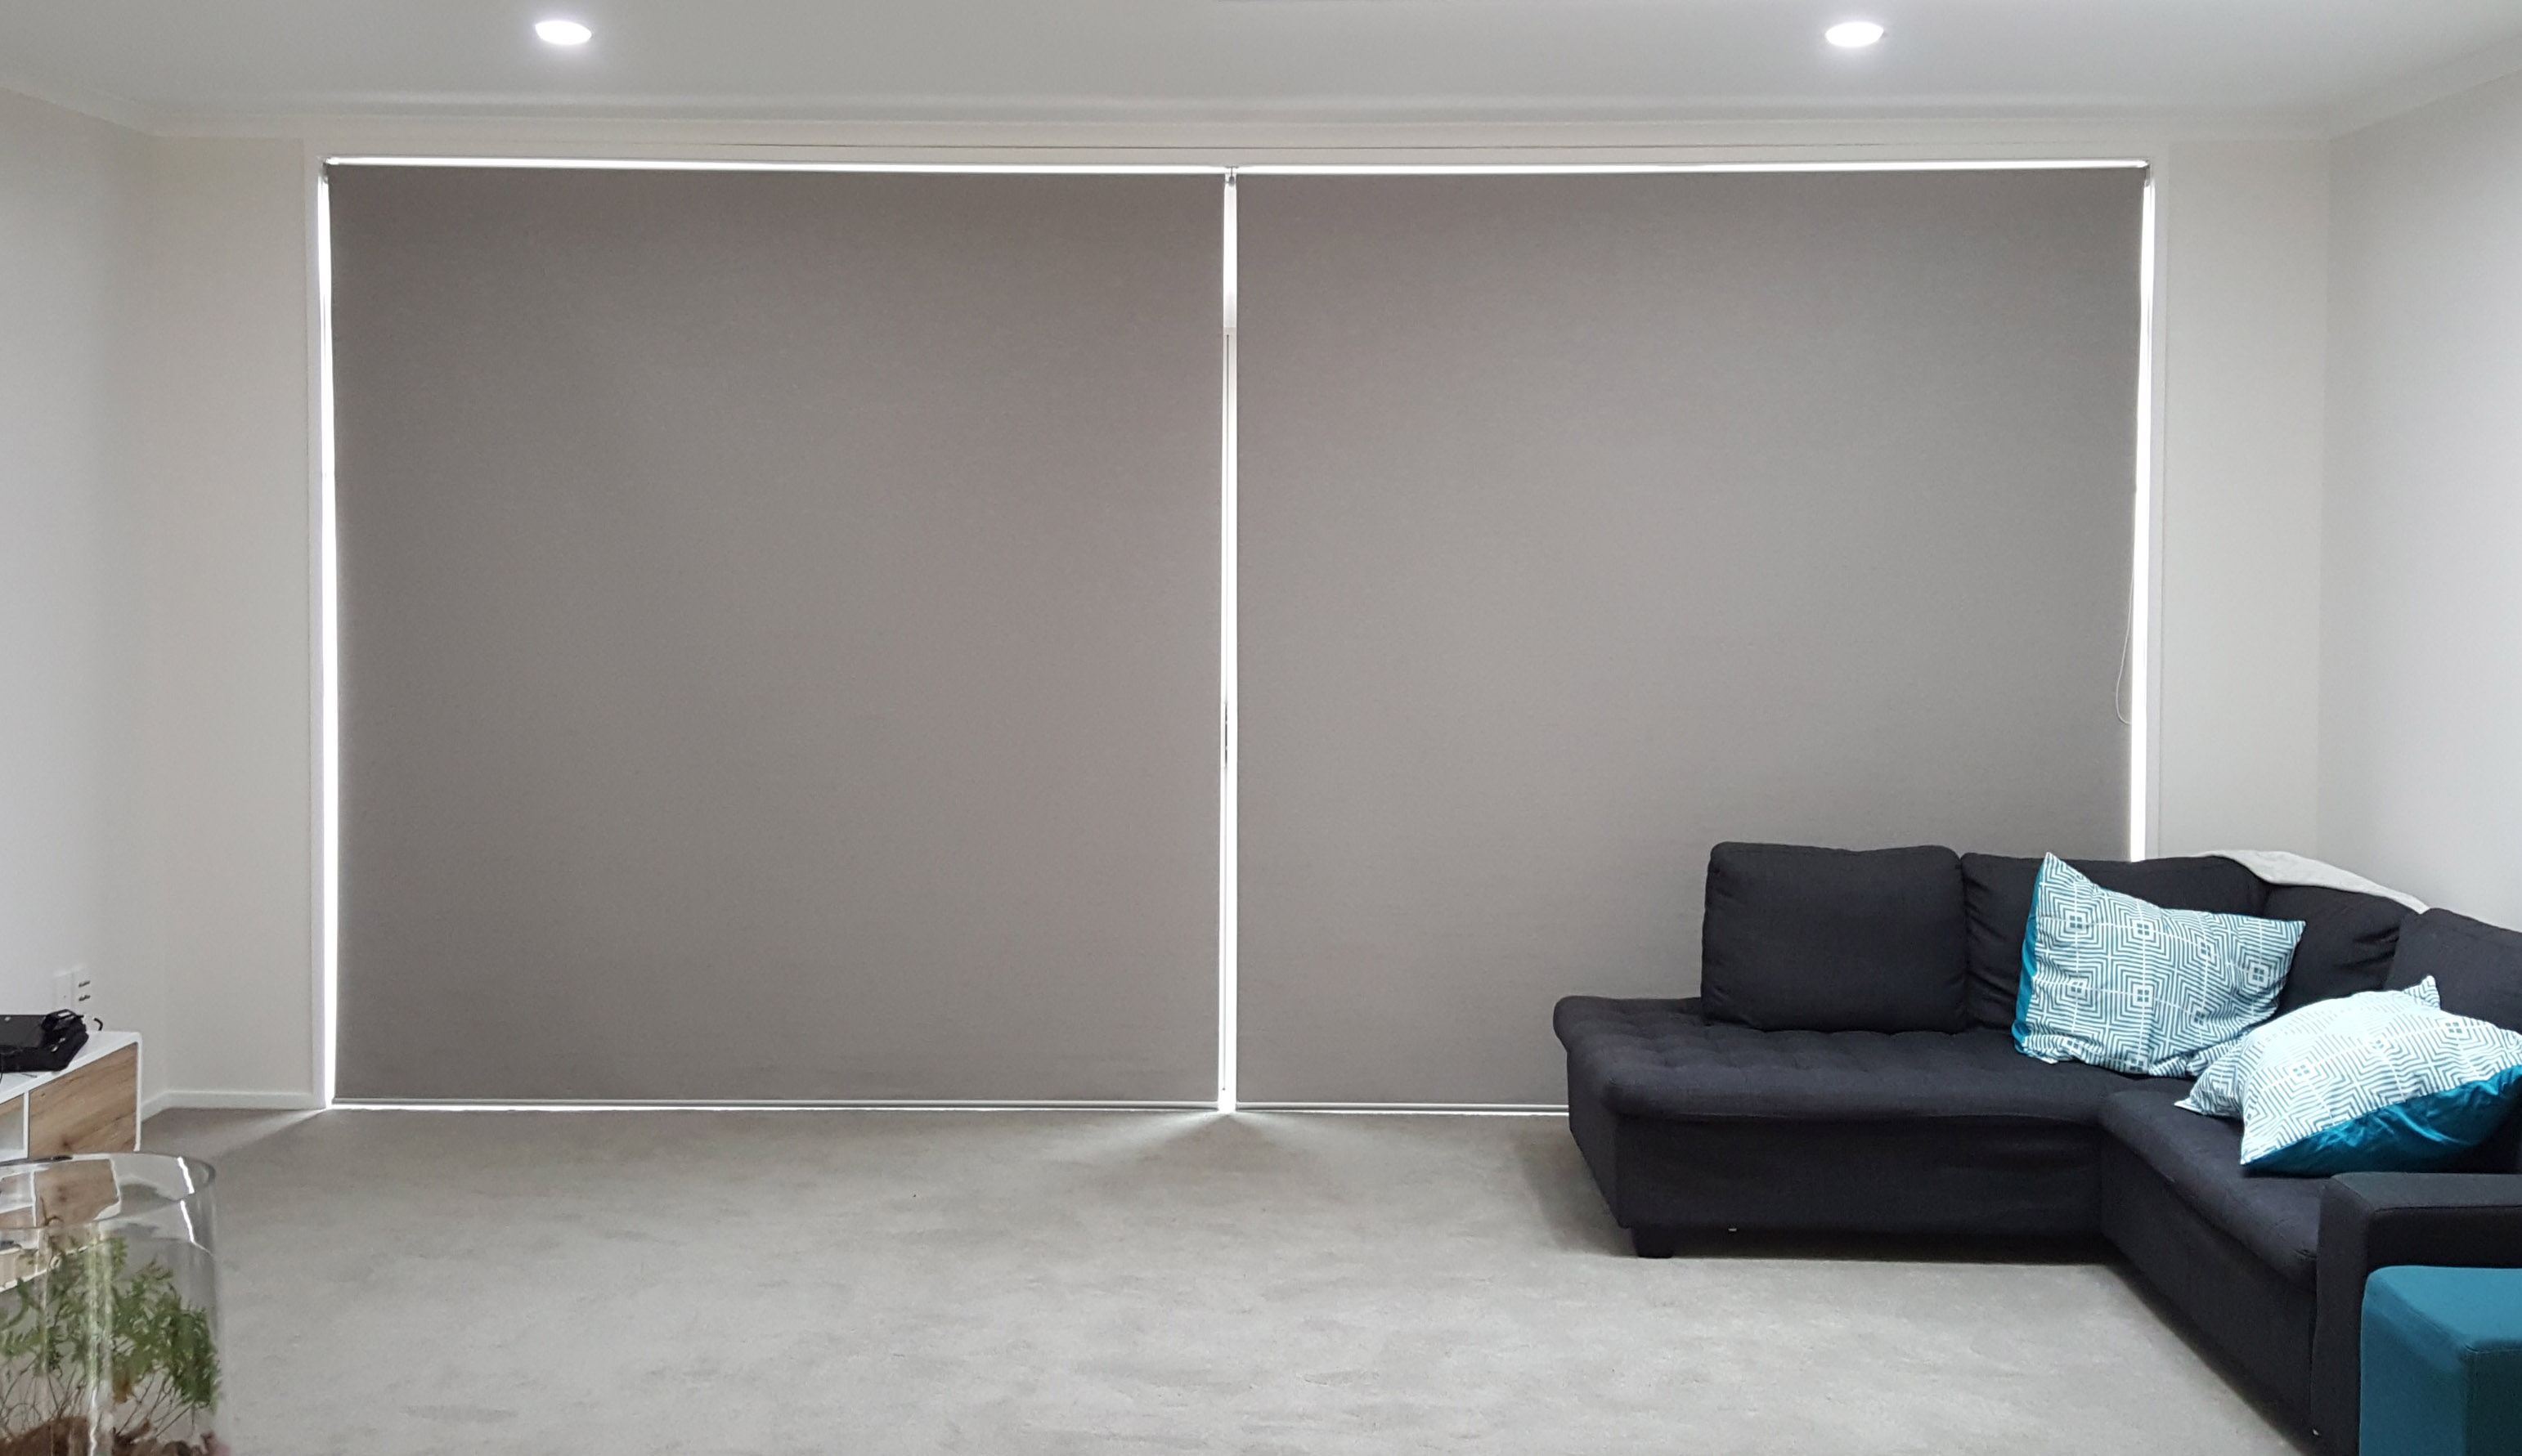 rollerblind type roller block australia apartments archives blinds residential blockout blind project brothers prevnext out